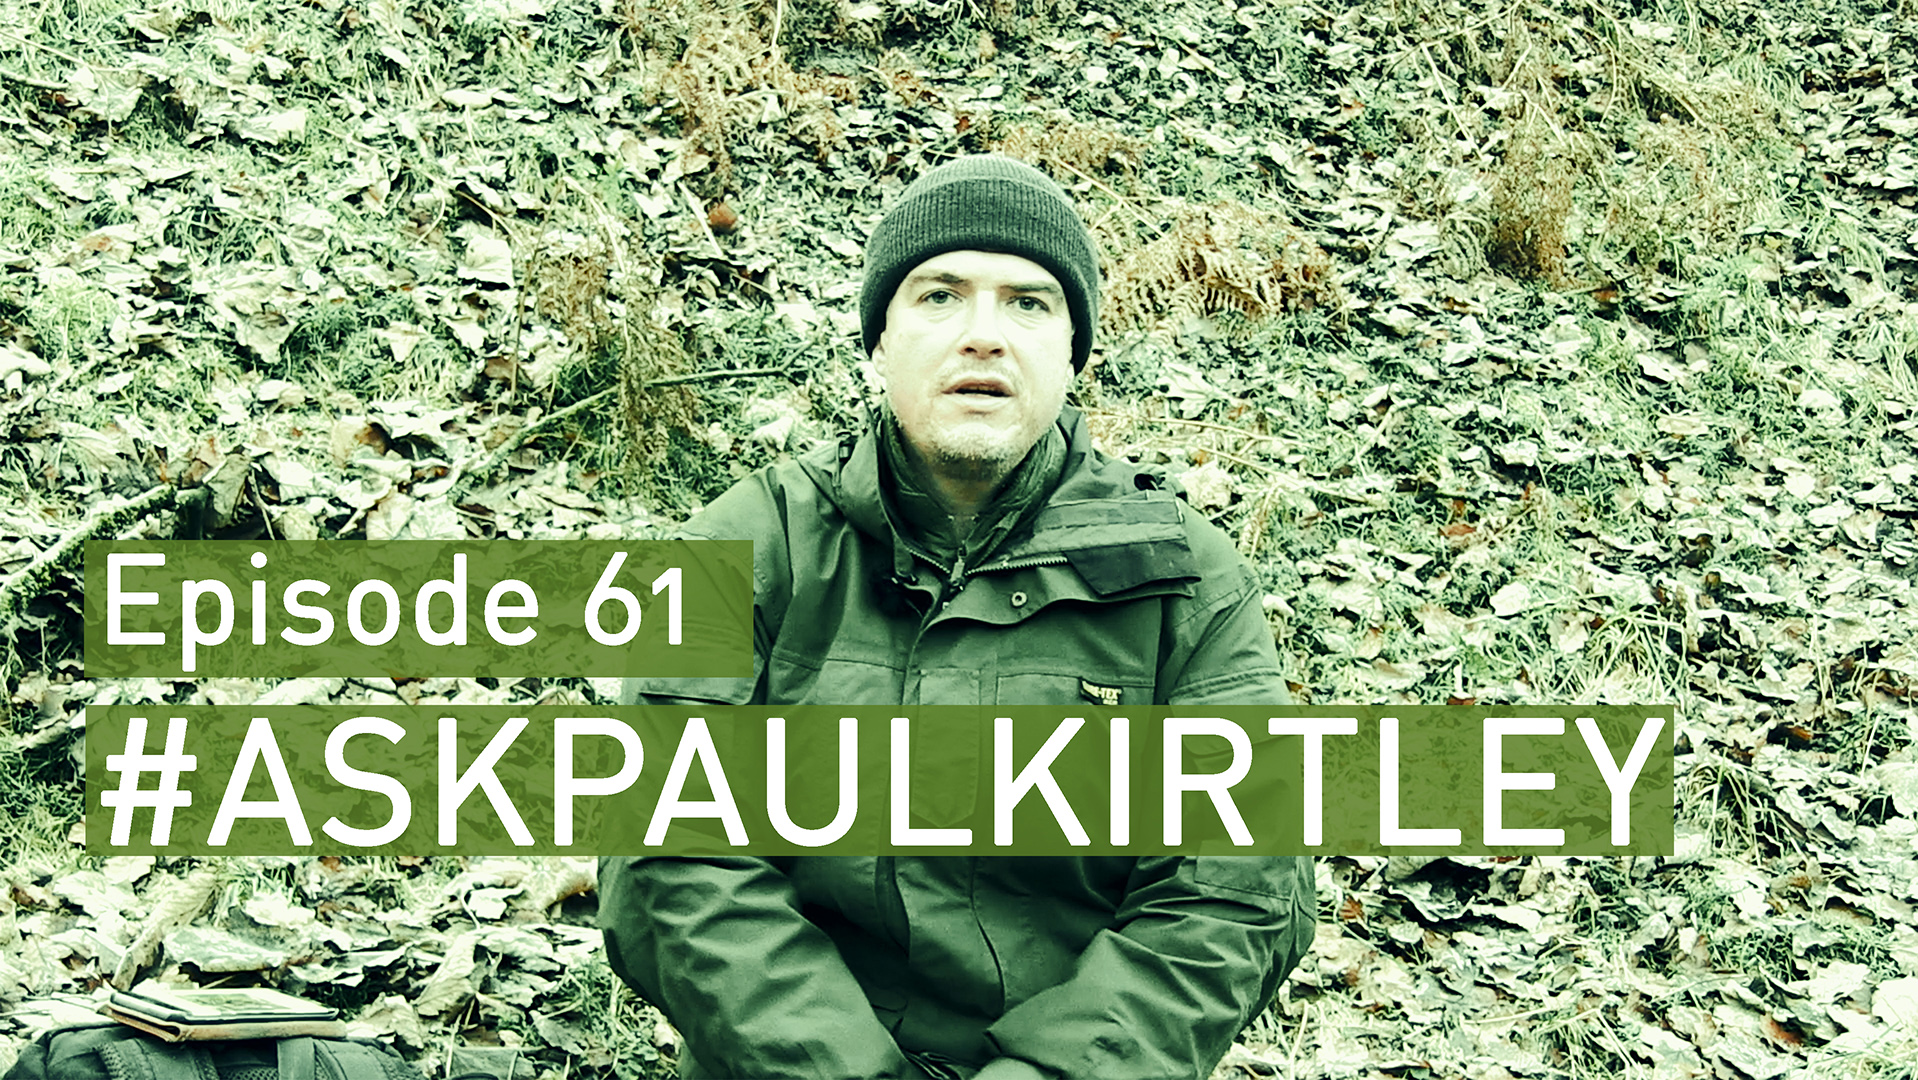 AskPaulKirtley episode 61